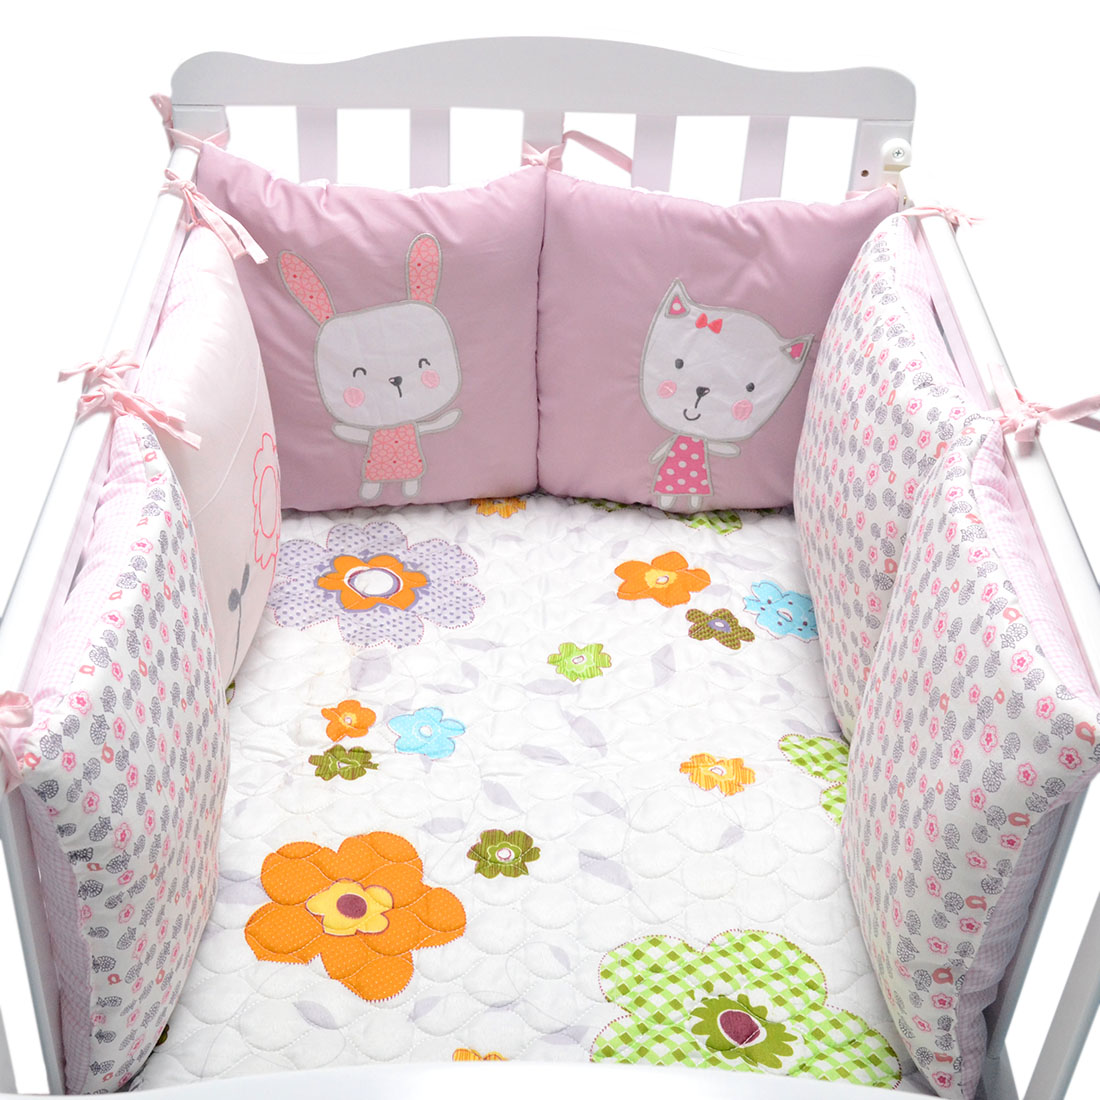 6pcs Baby Bed Bumpers for Newborn Cotton Bed Baby Crib Bumper Bedding Around Protection Back Cushion Pillow Crib Bumpers Bedding 6pcs animal print 100%cotton baby bedding bumpers stars bed around cartoon removable boys and girls unisex baby bed crib bumper